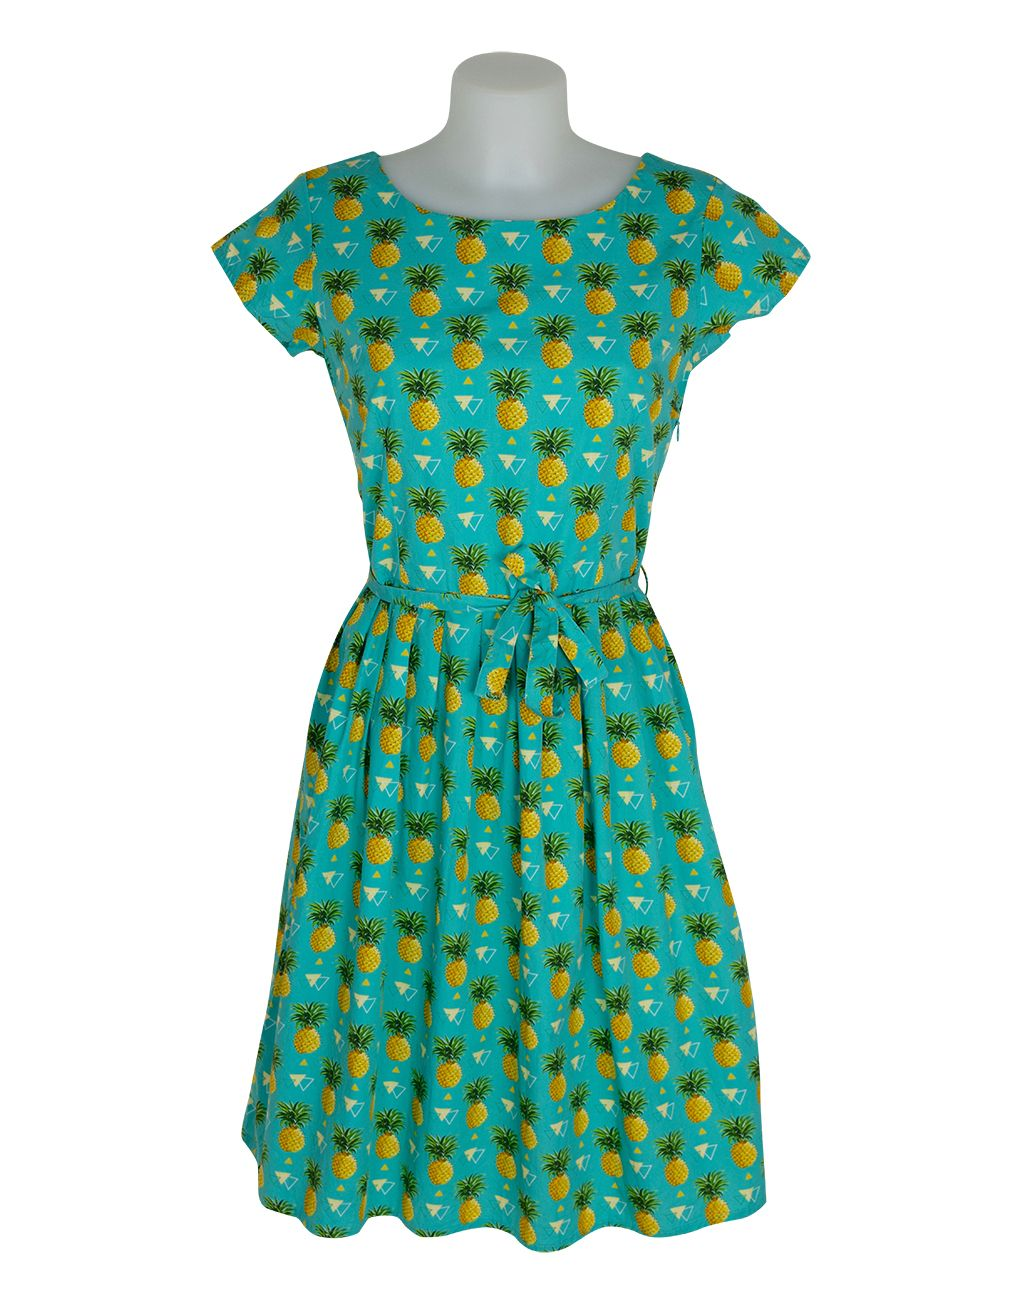 Run & Fly Retro Vintage Tutti Frutti Pineapple Dress 8 XS